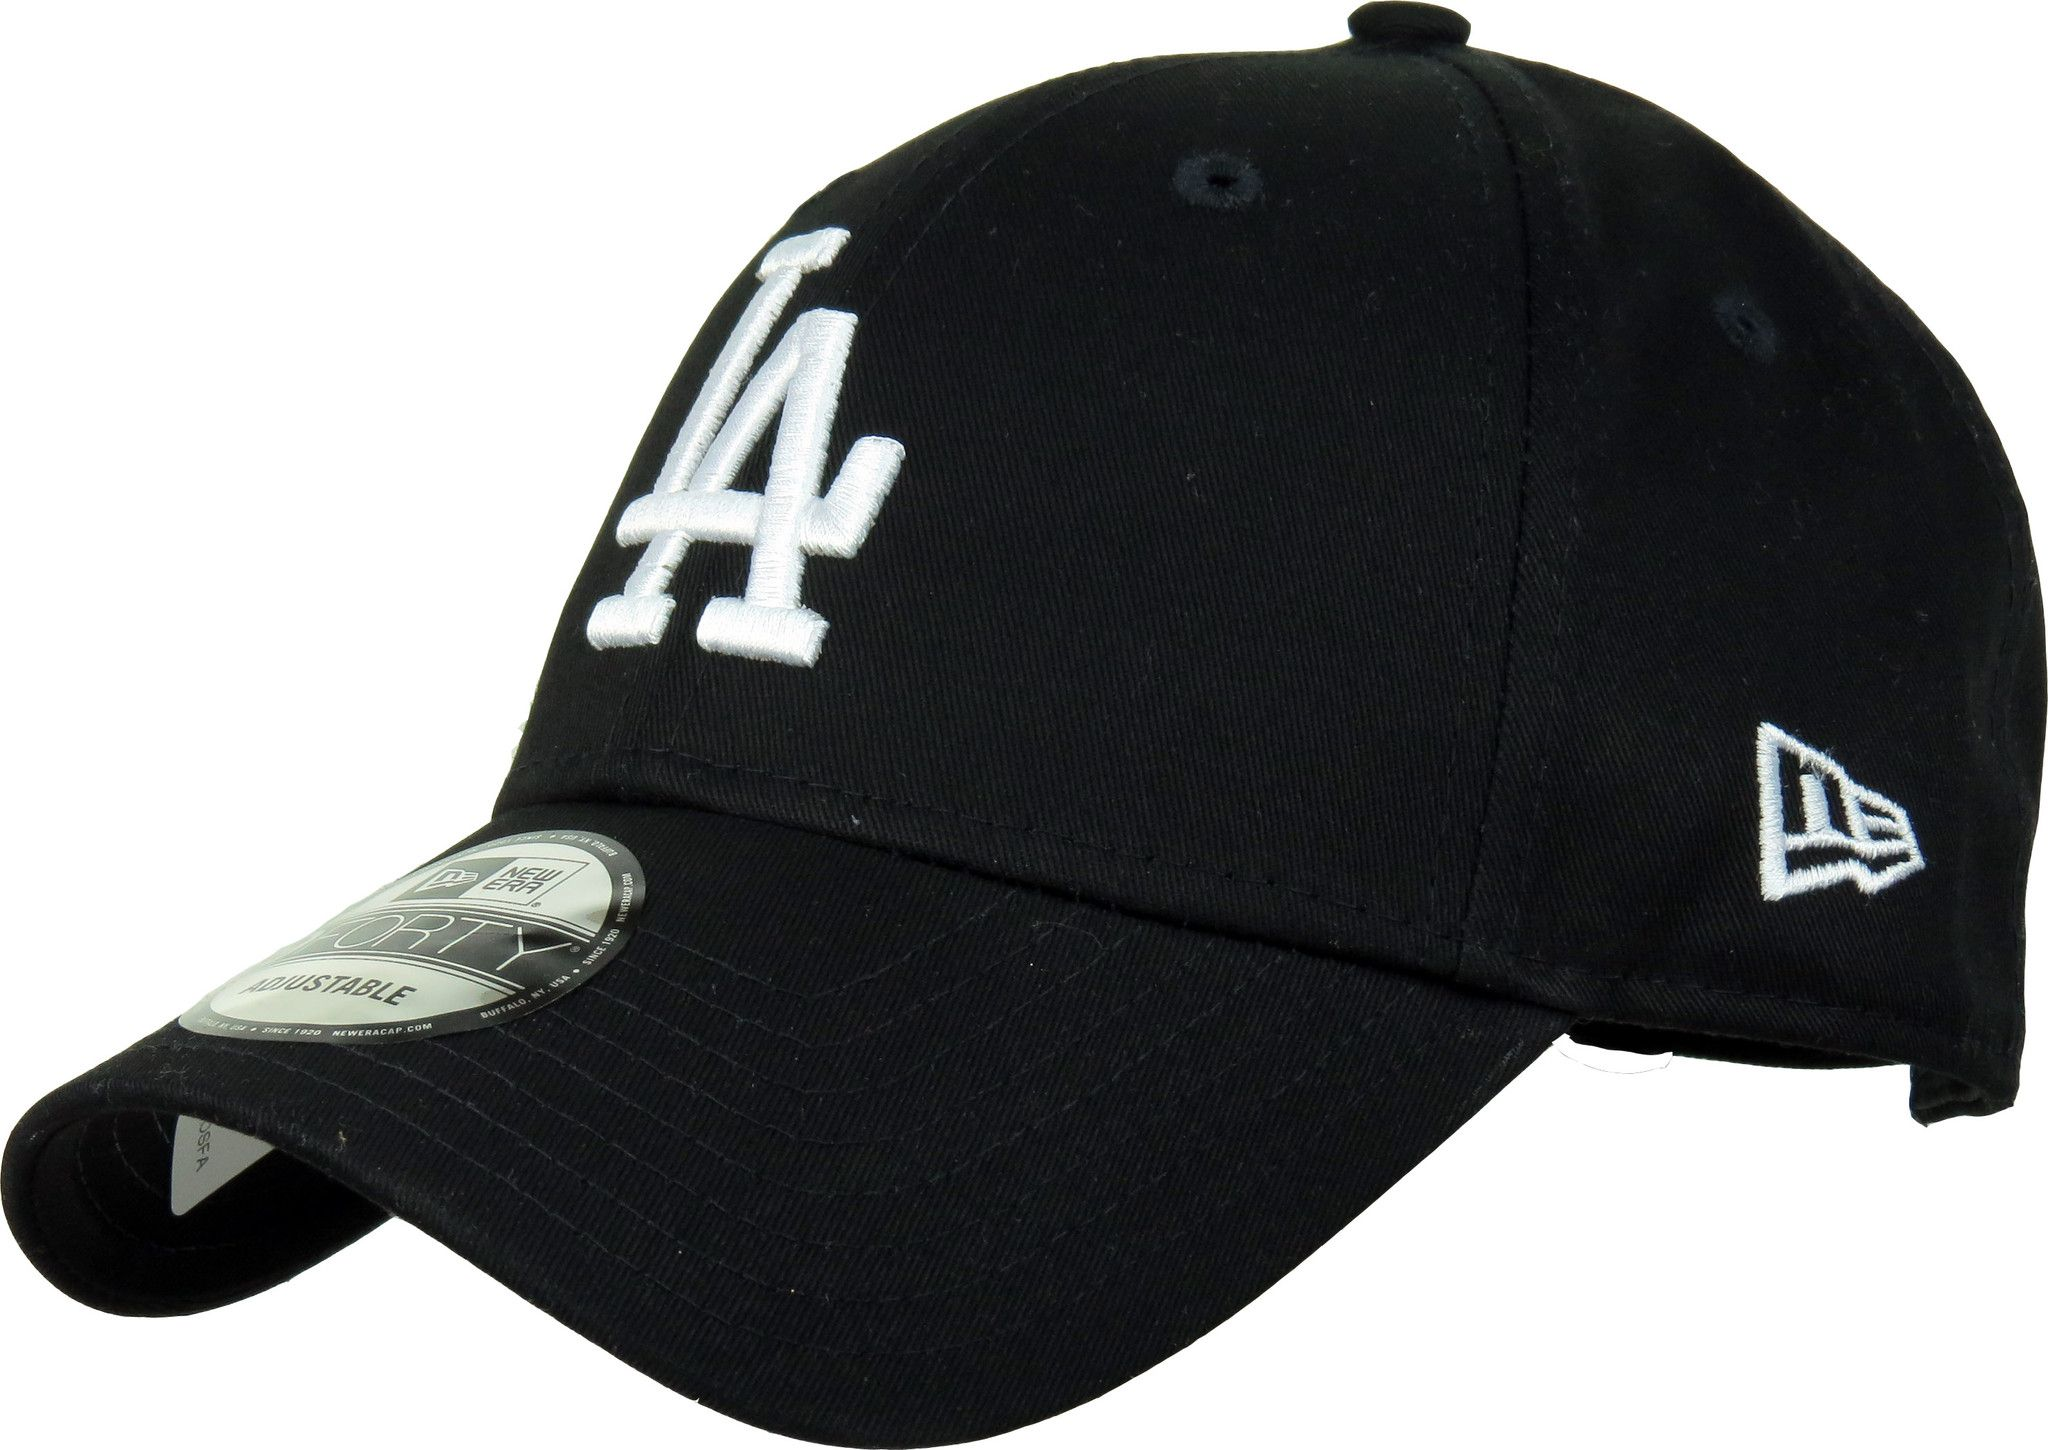 LA Dodgers New Era 940 League Essential Black Baseball Cap  2bb04b3f650